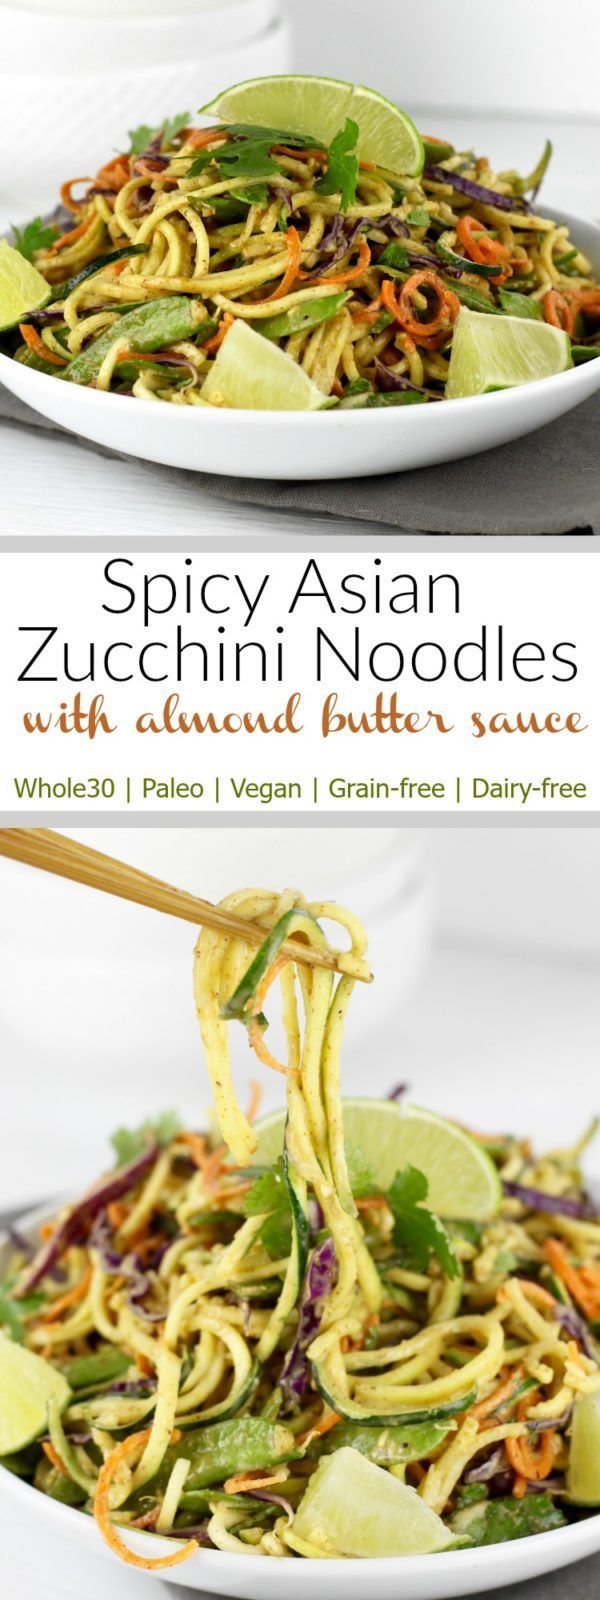 ... on Pinterest | Zucchini noodles, Noodles and Zucchini noodle recipes